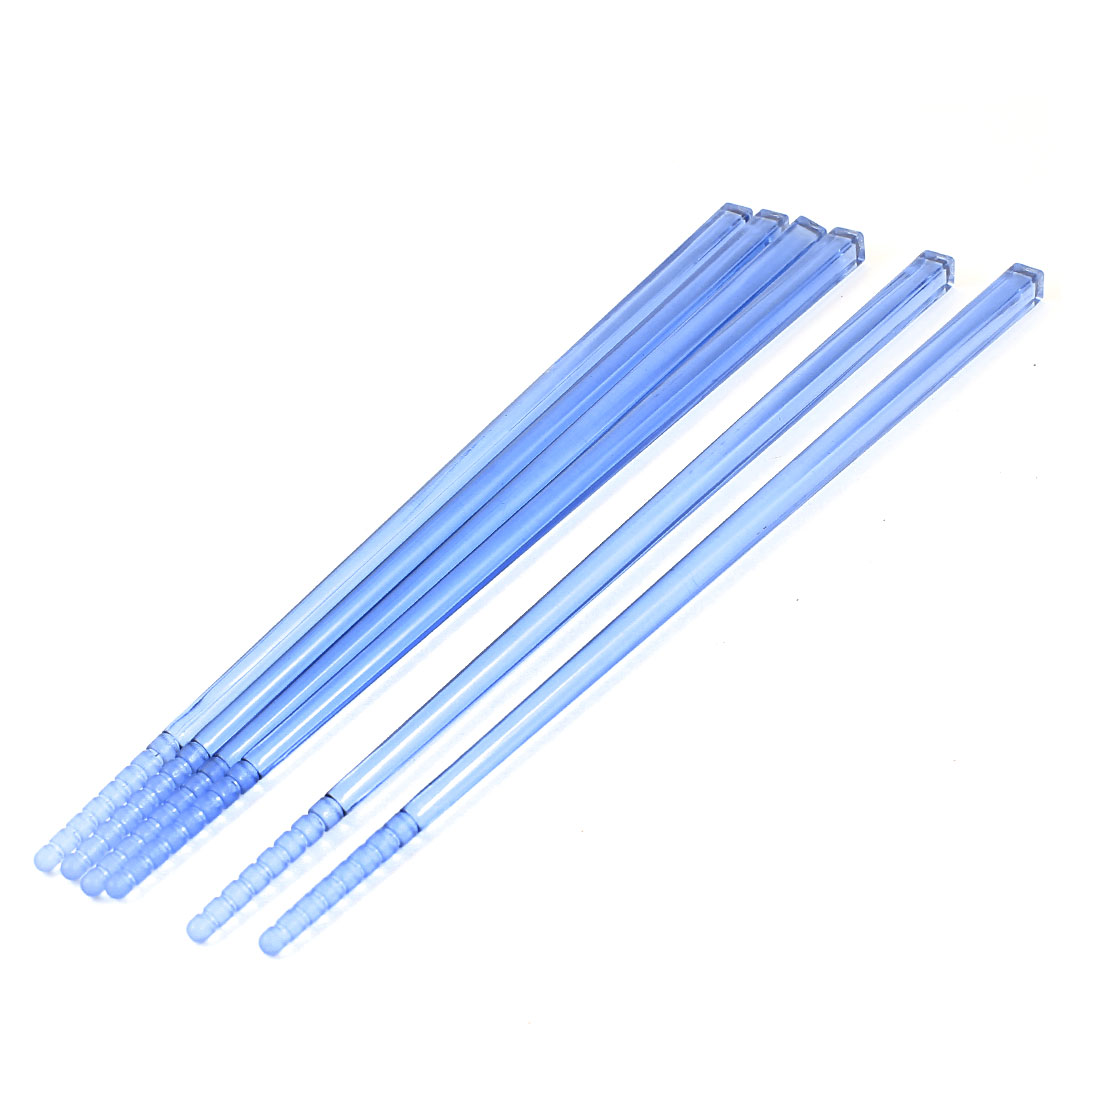 3 Pair Home Kitchen Environmental Protection Resin Chinese Traditional Utensils Cutlery Chopsticks Set Light Blue